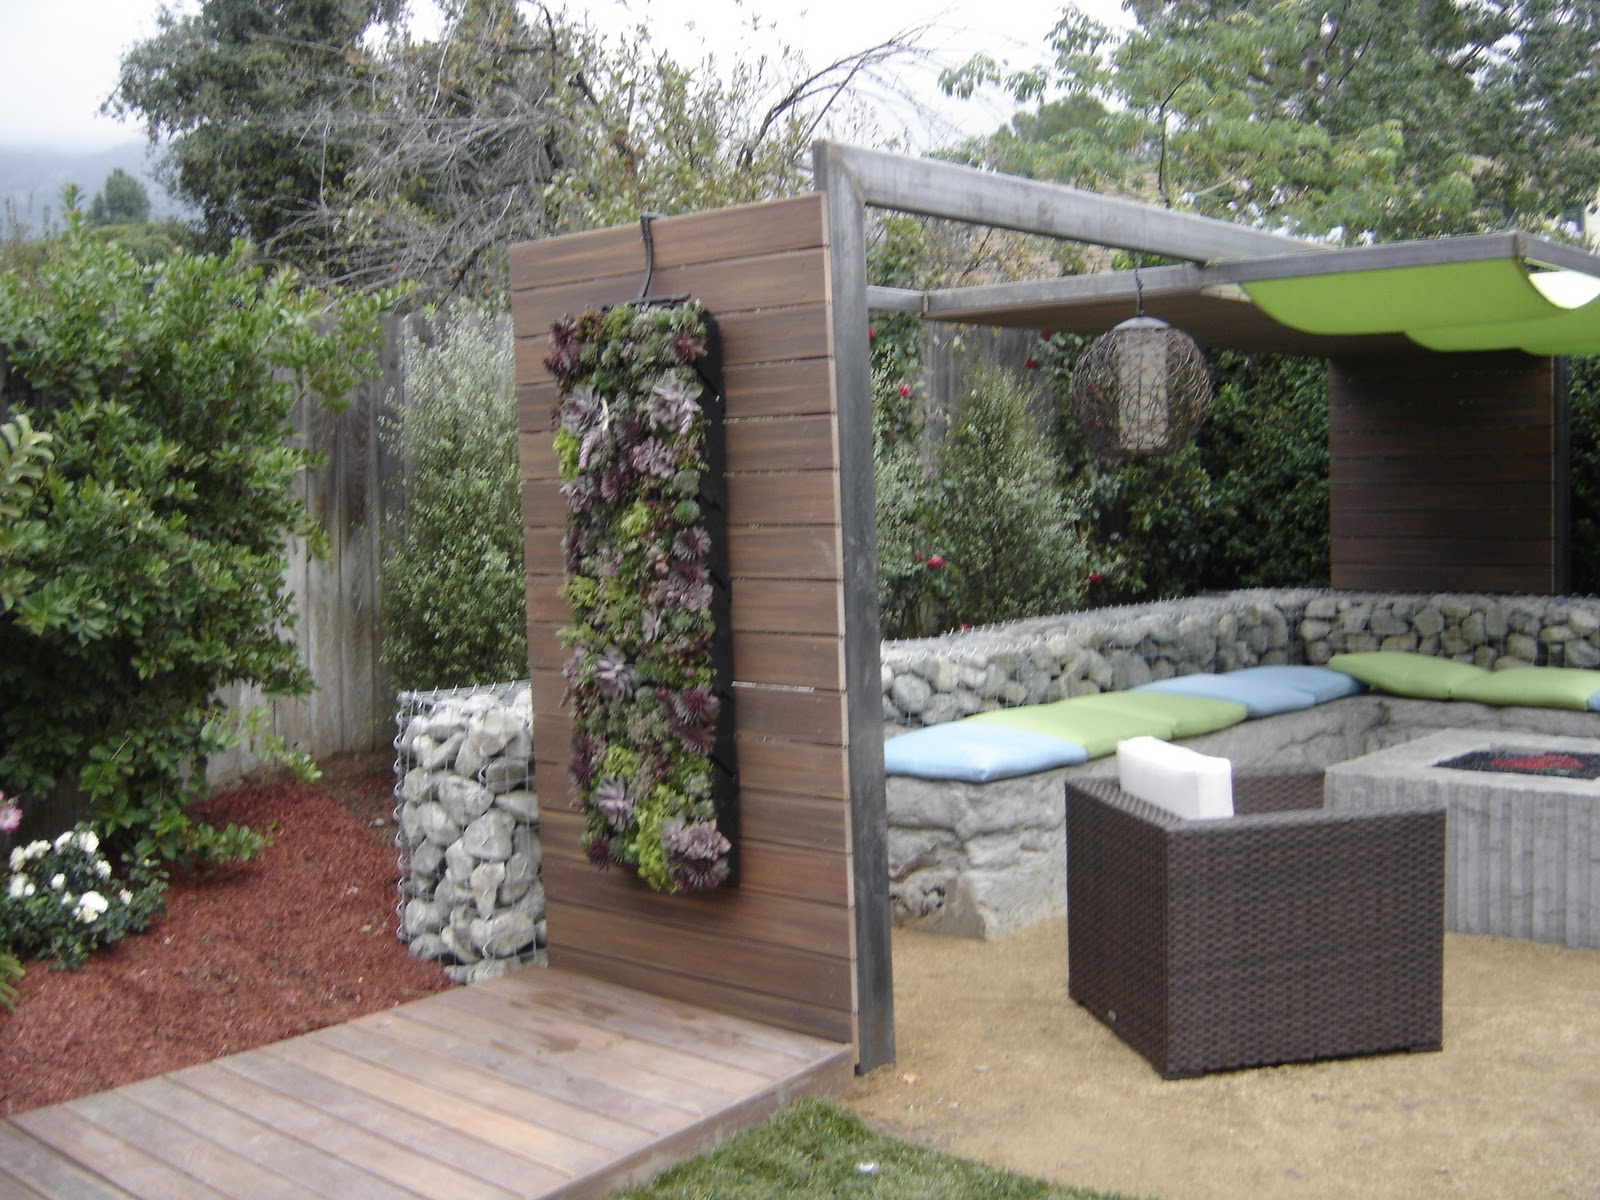 Creating living walls: Vertical Wall with Yard Crashers in